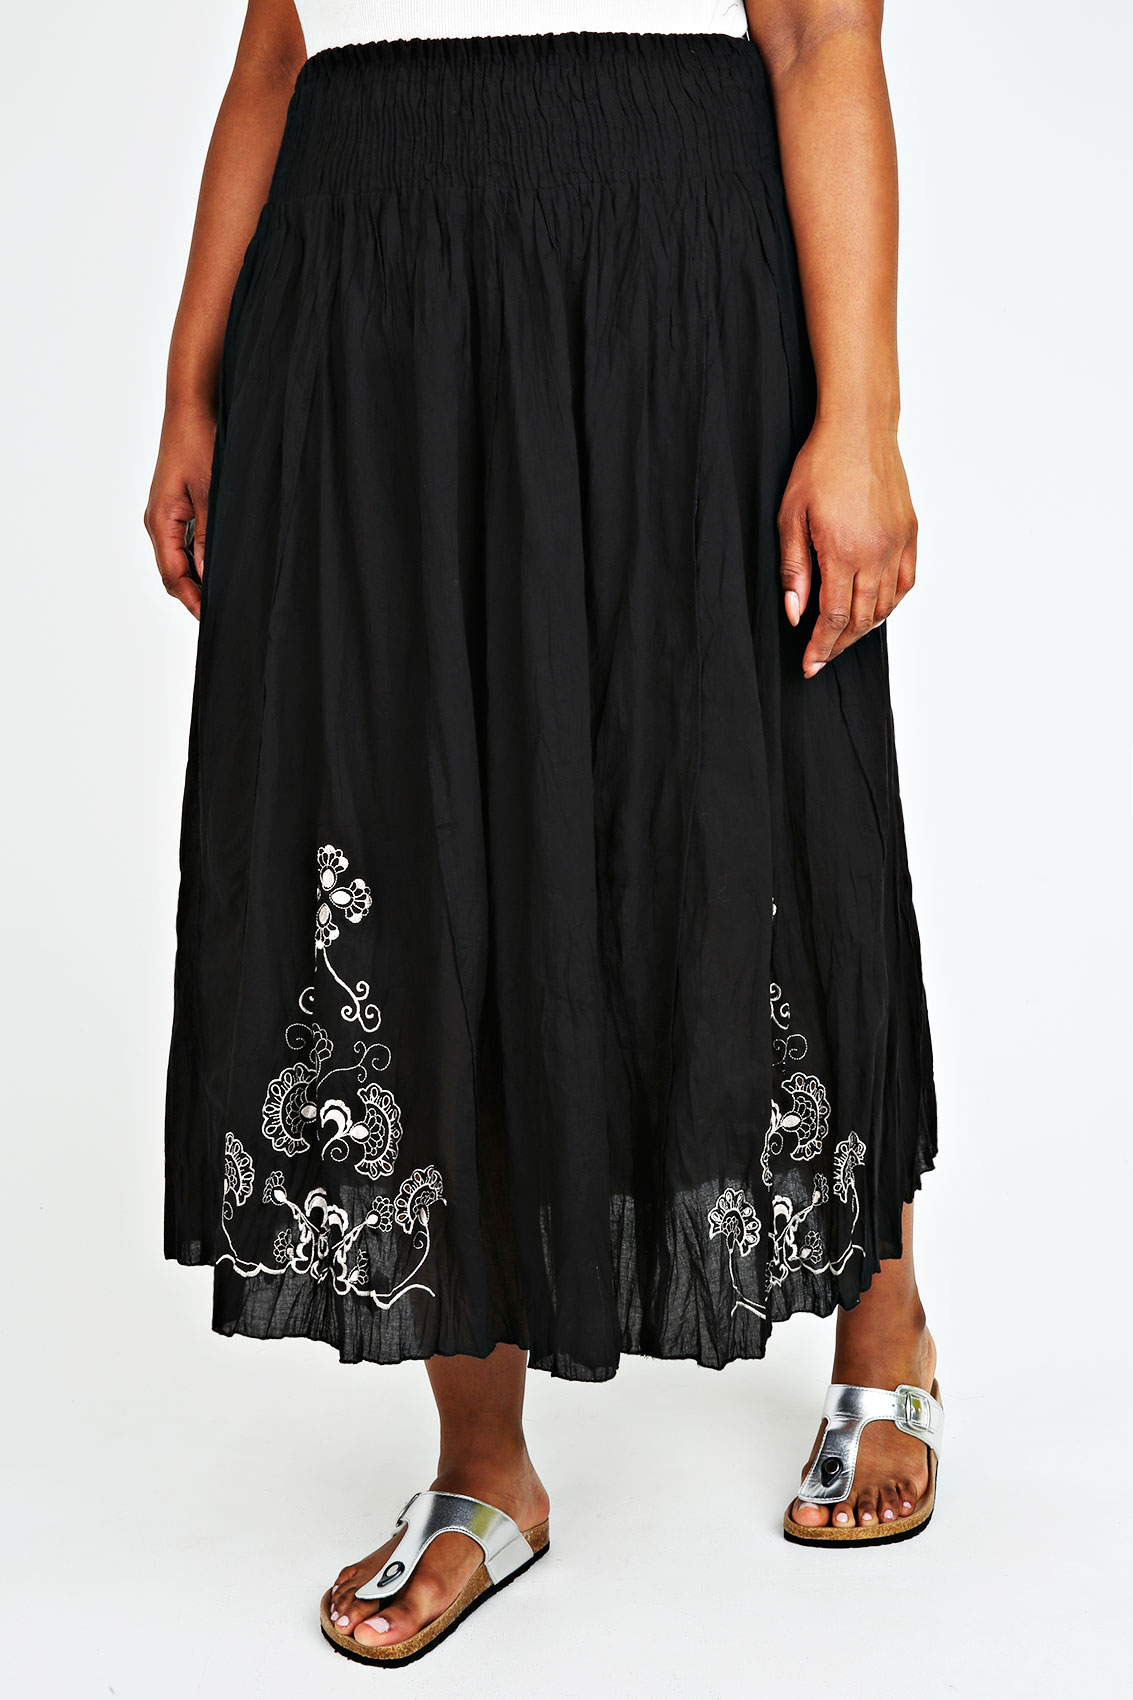 New Chaps Ralph Lauren Skirt Black White Peasant Boho Cotton Pull On Maxi XL See more like this. SPONSORED. GAP NWT $59 TRUE BLACK TIE BELT MIDI LINEN COTTON SKIRT sz. 0. Women's Mossimo Black Cotton Skirt Small. Pre-Owned. $ or .